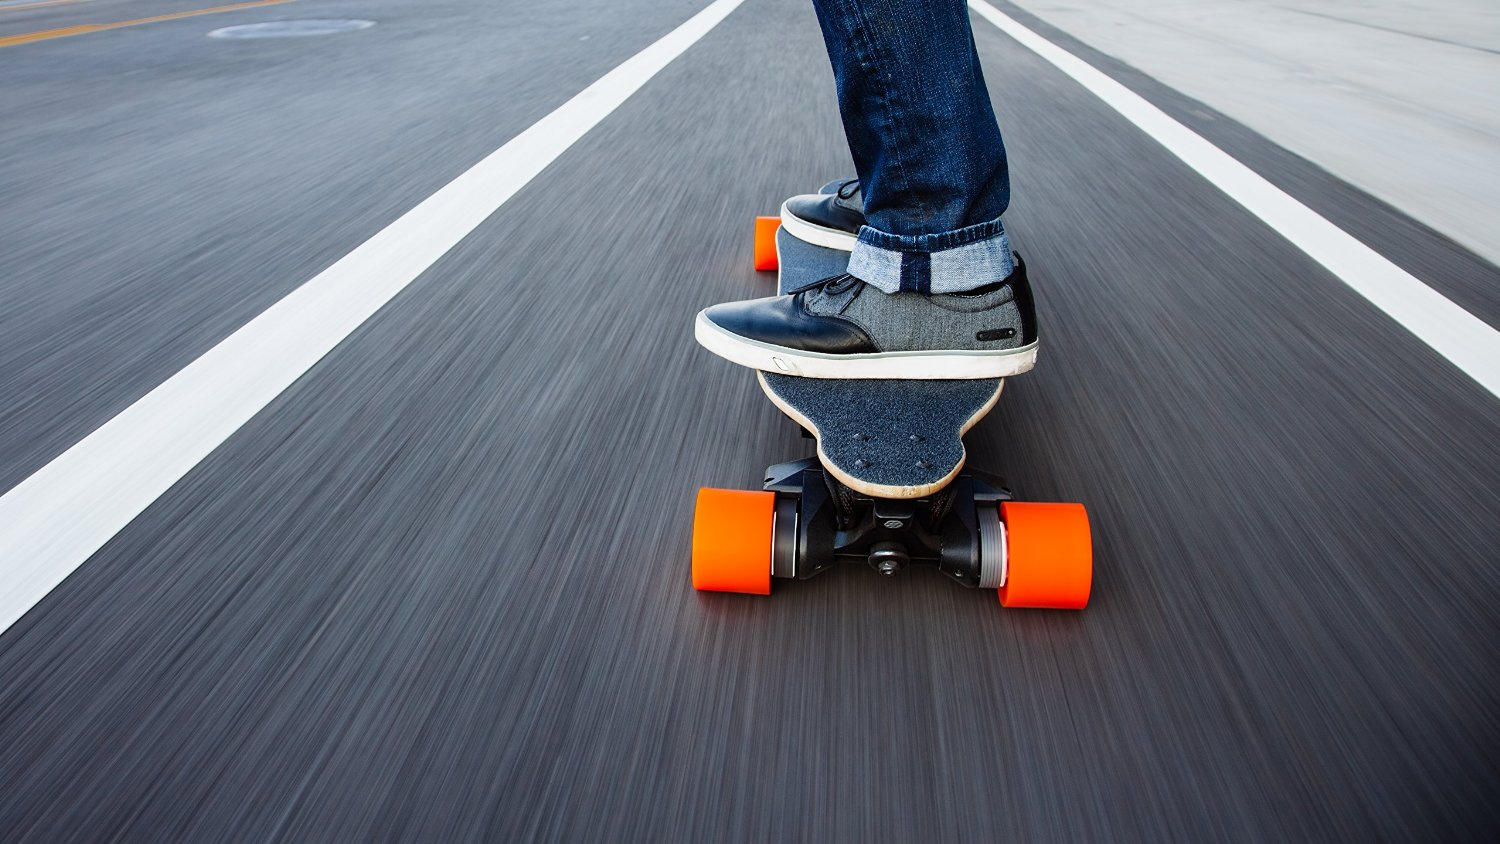 boosted-board image